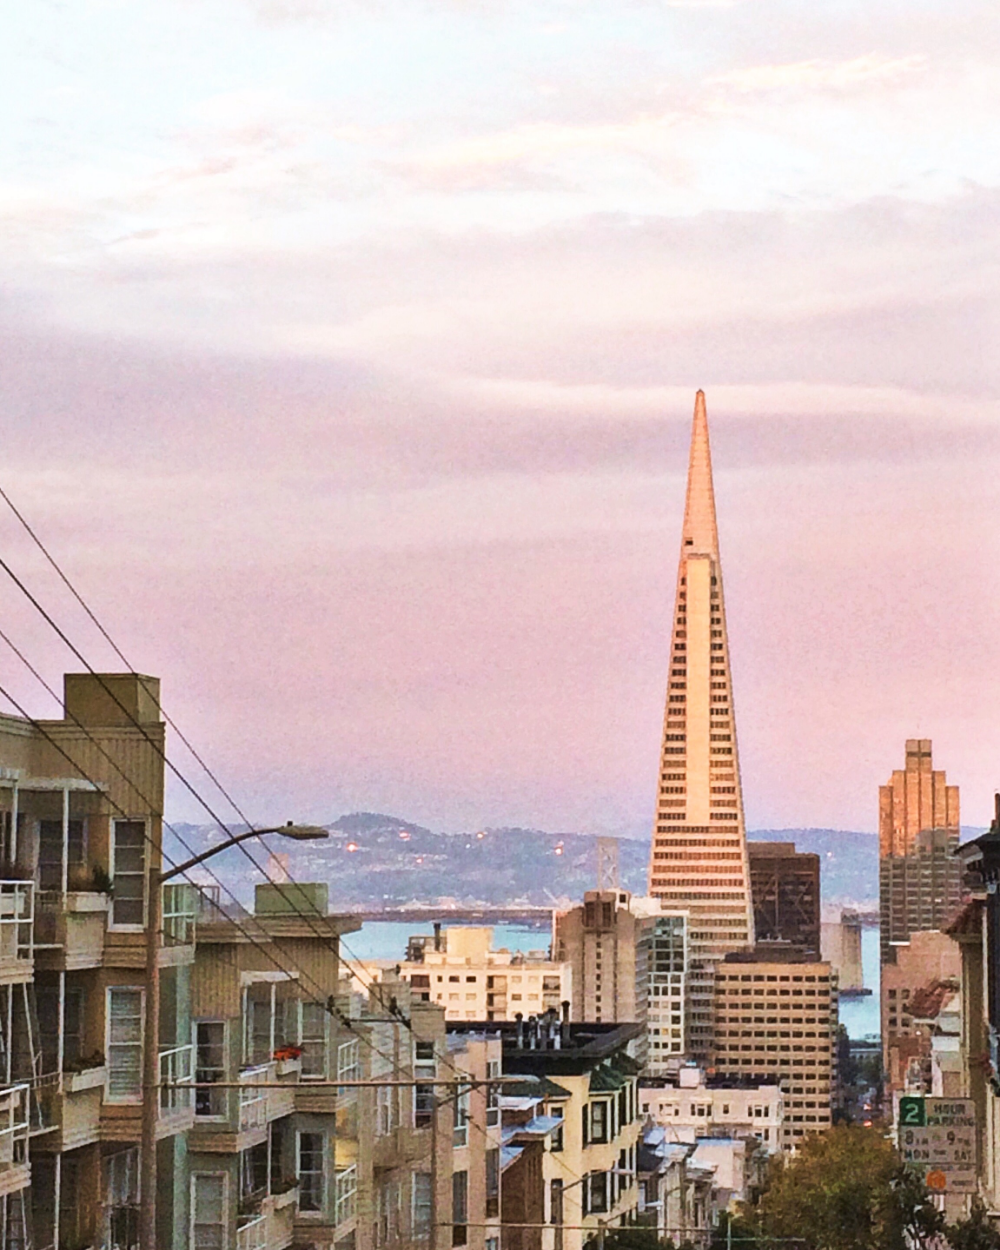 View of Transamerica Pyramid in Downtown San Francisco from Nob Hill's sumit